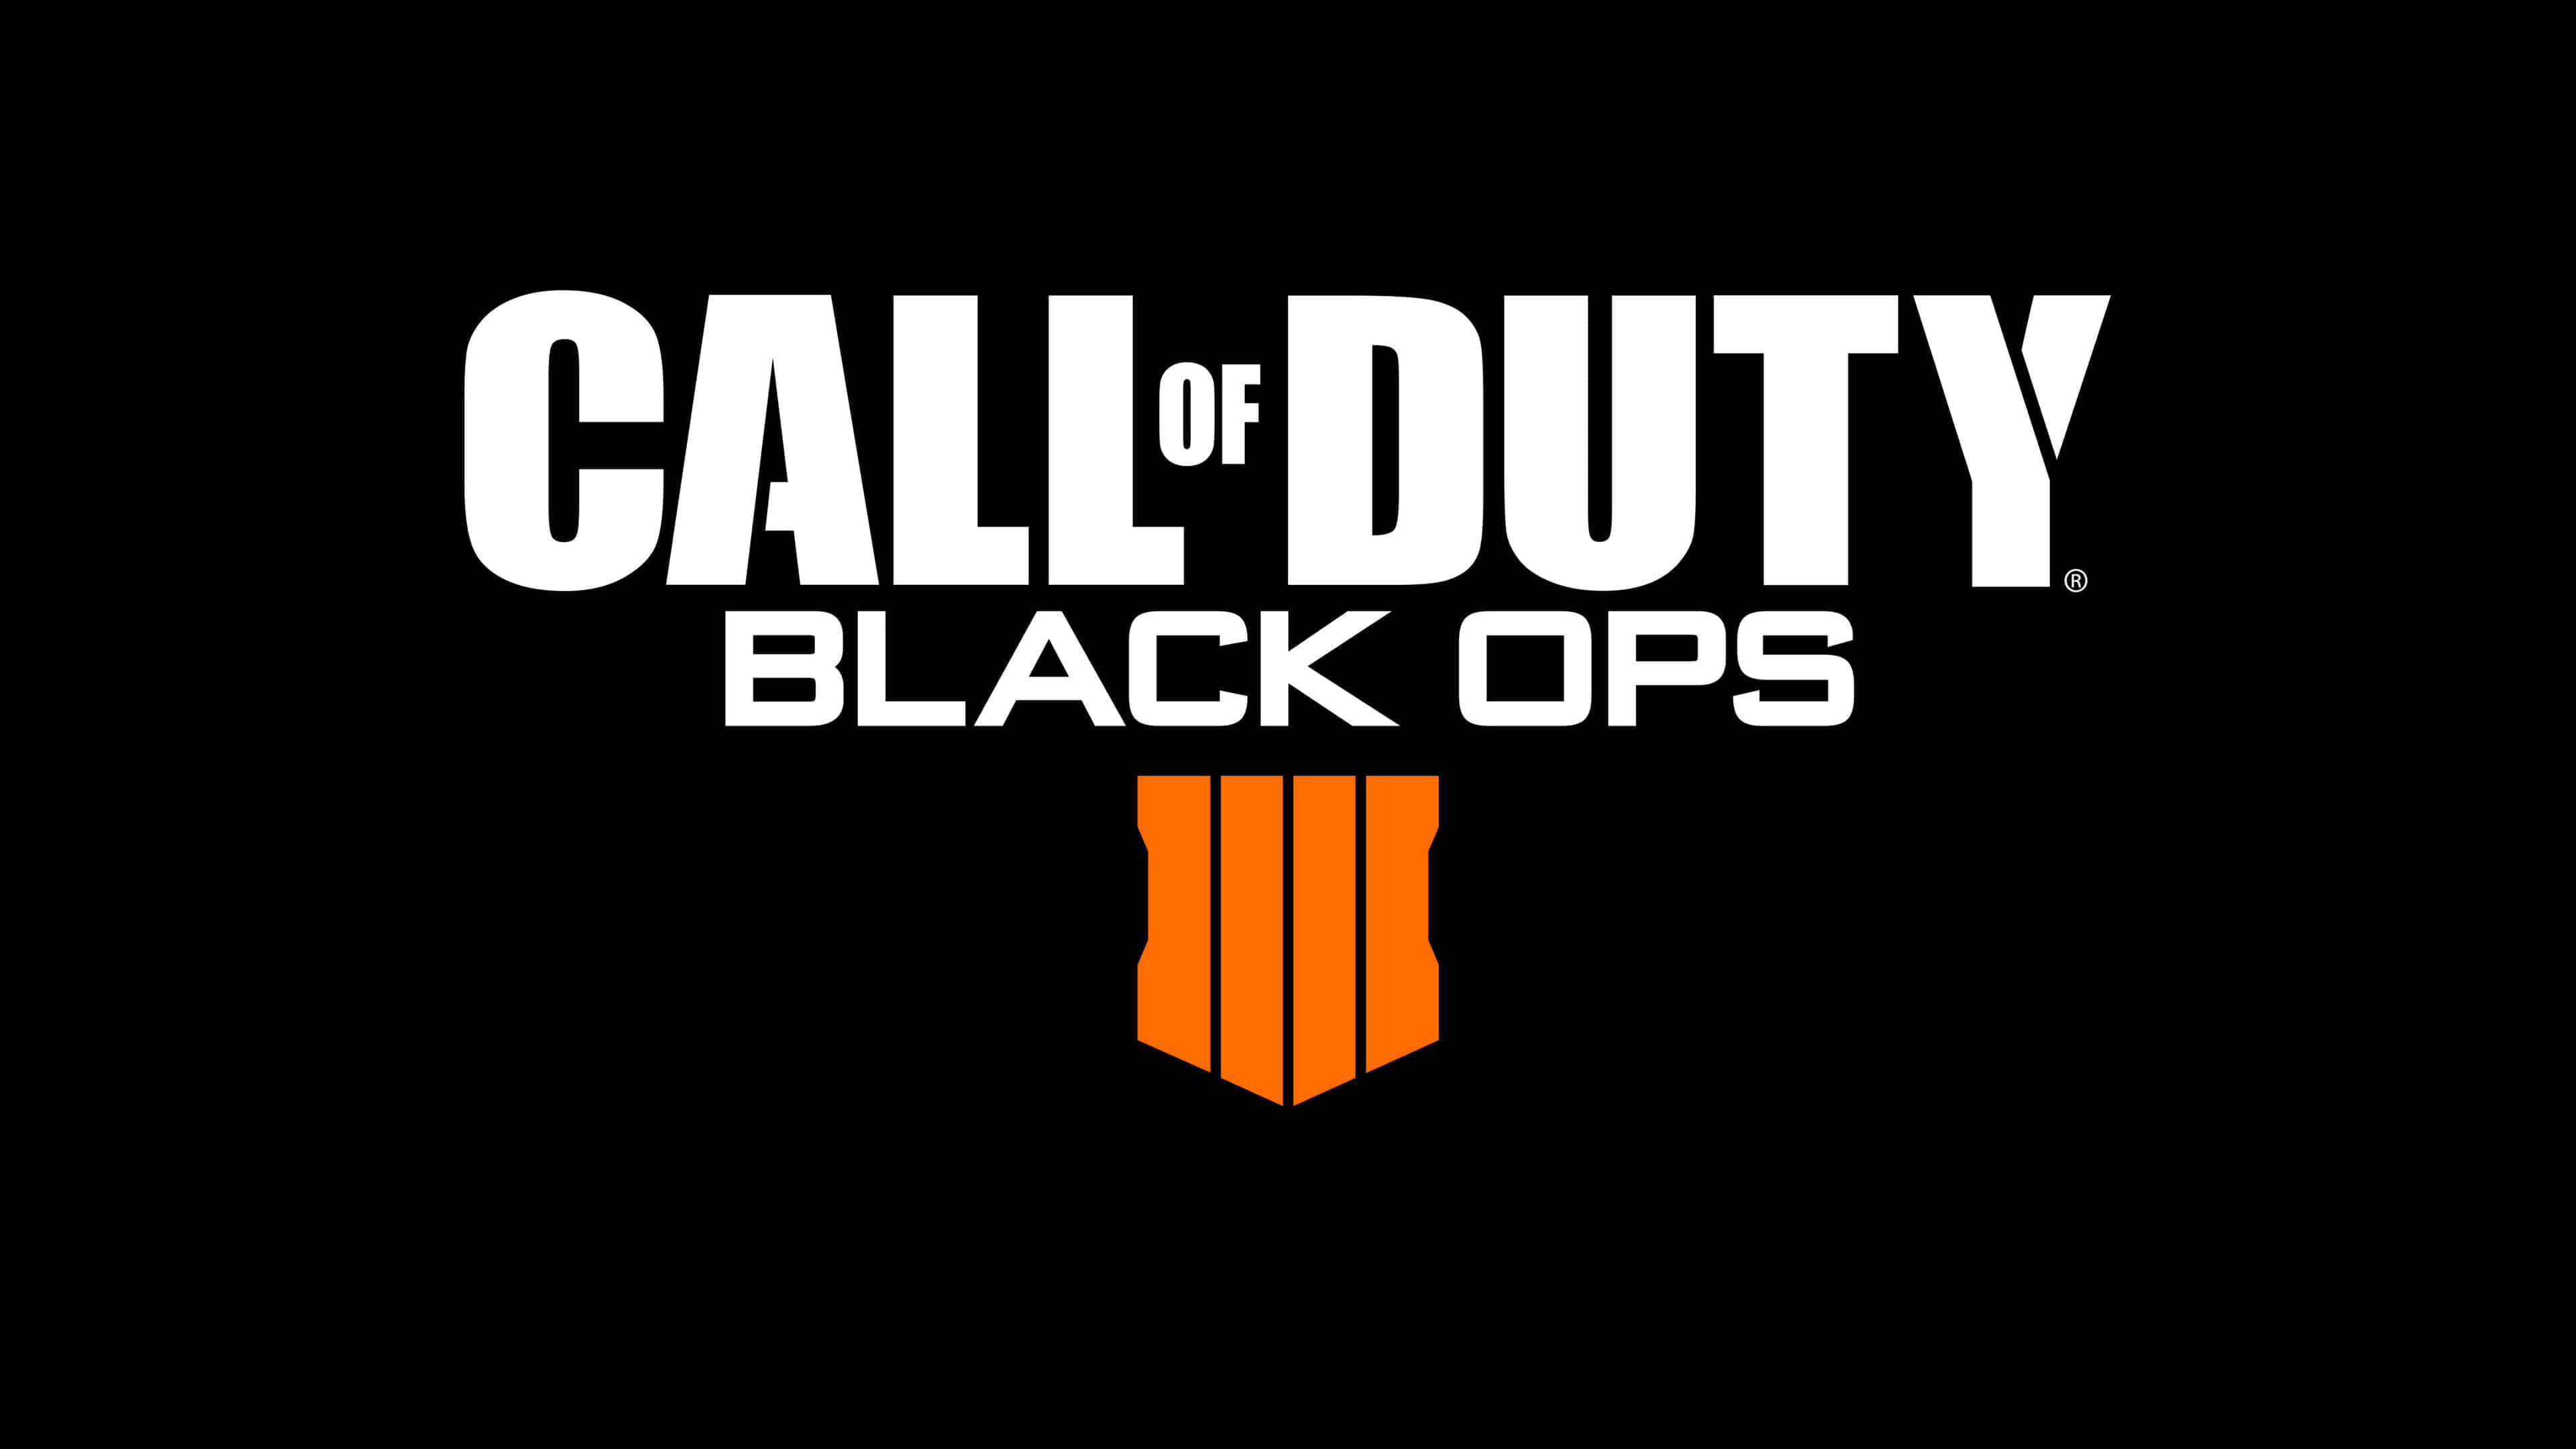 call of duty black ops 4 logo uhd 4k wallpaper